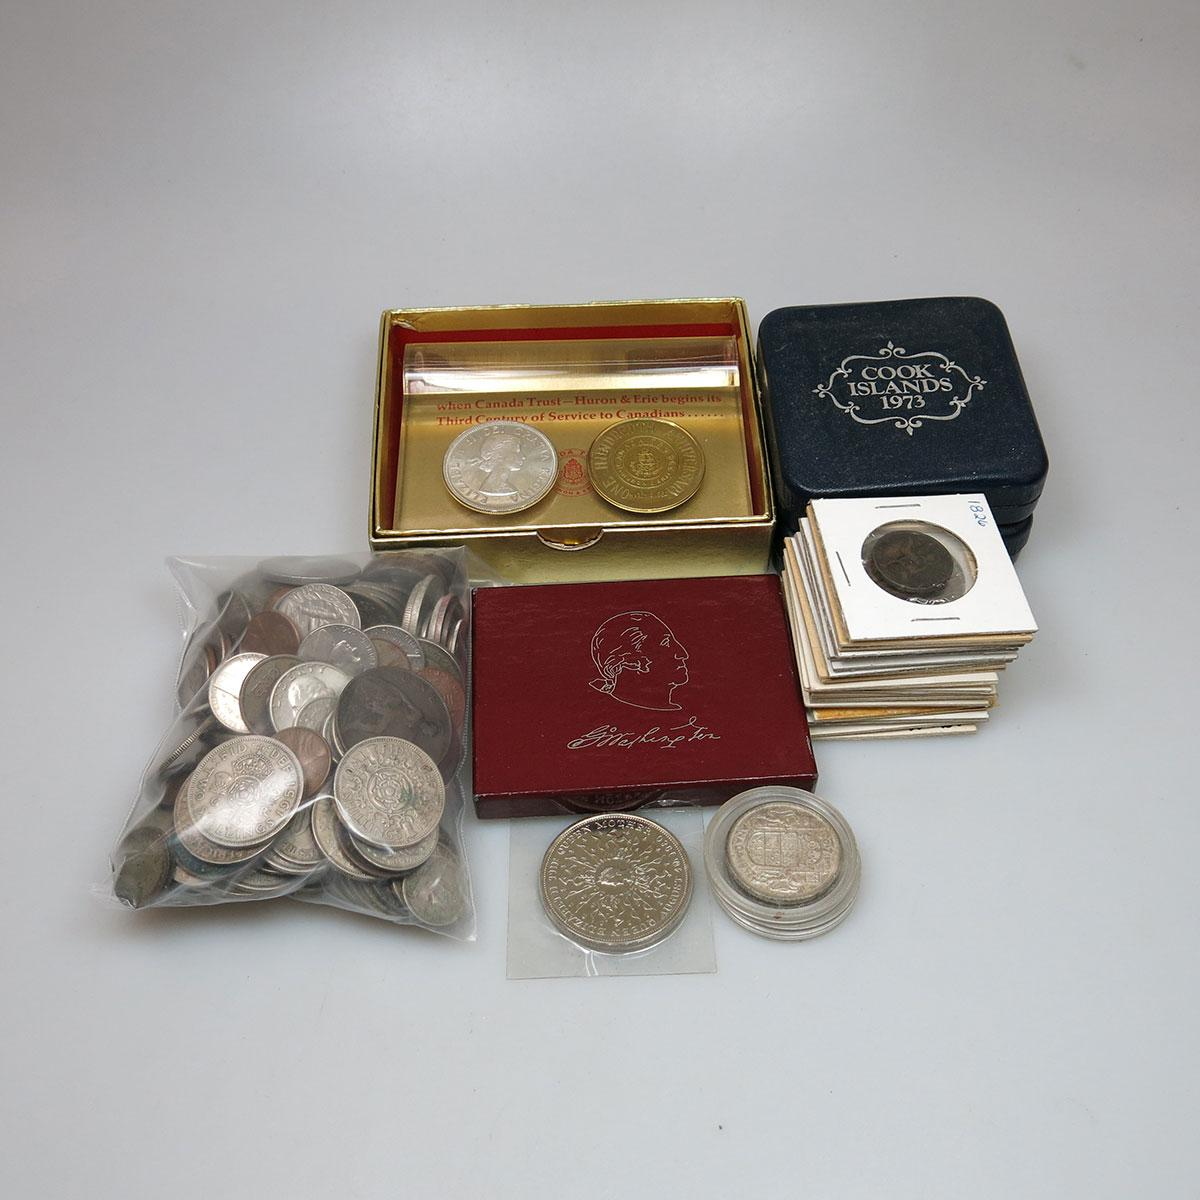 Small Quantity Of Foreign Coins, Canadian Mint Product, Etc